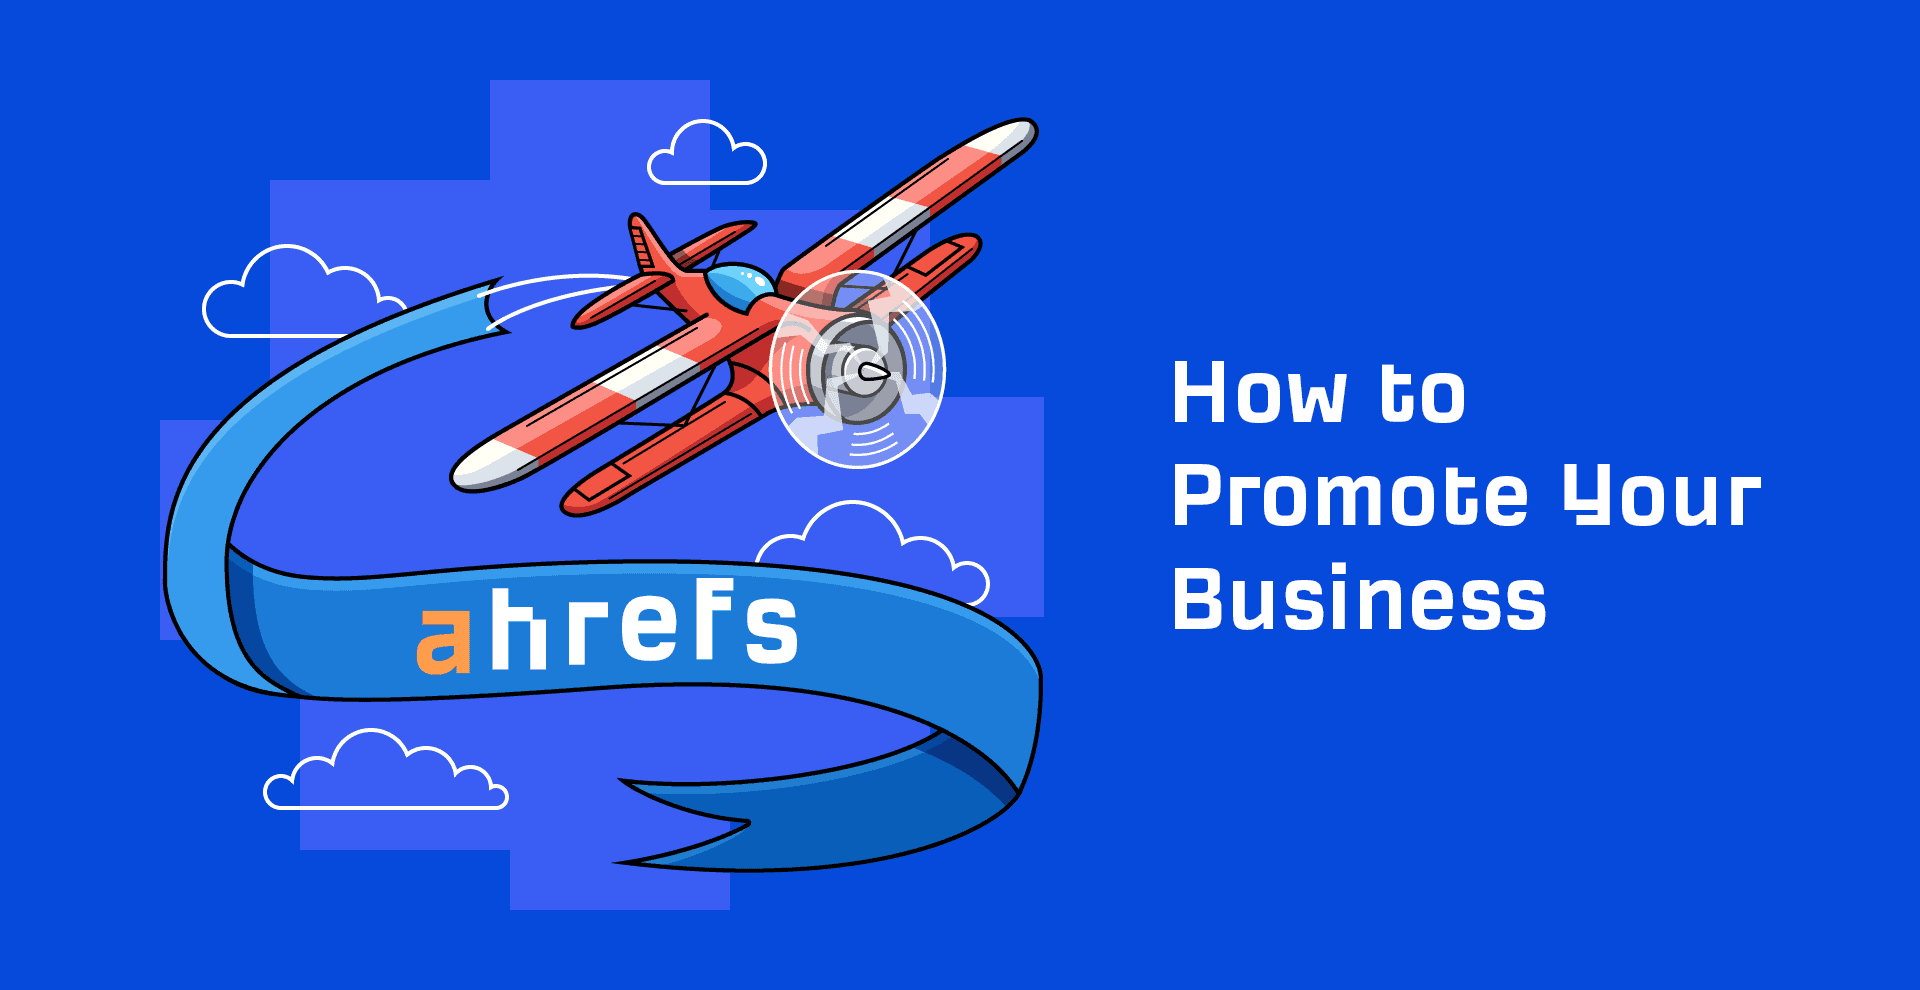 13 Free Ways to Promote Your Business